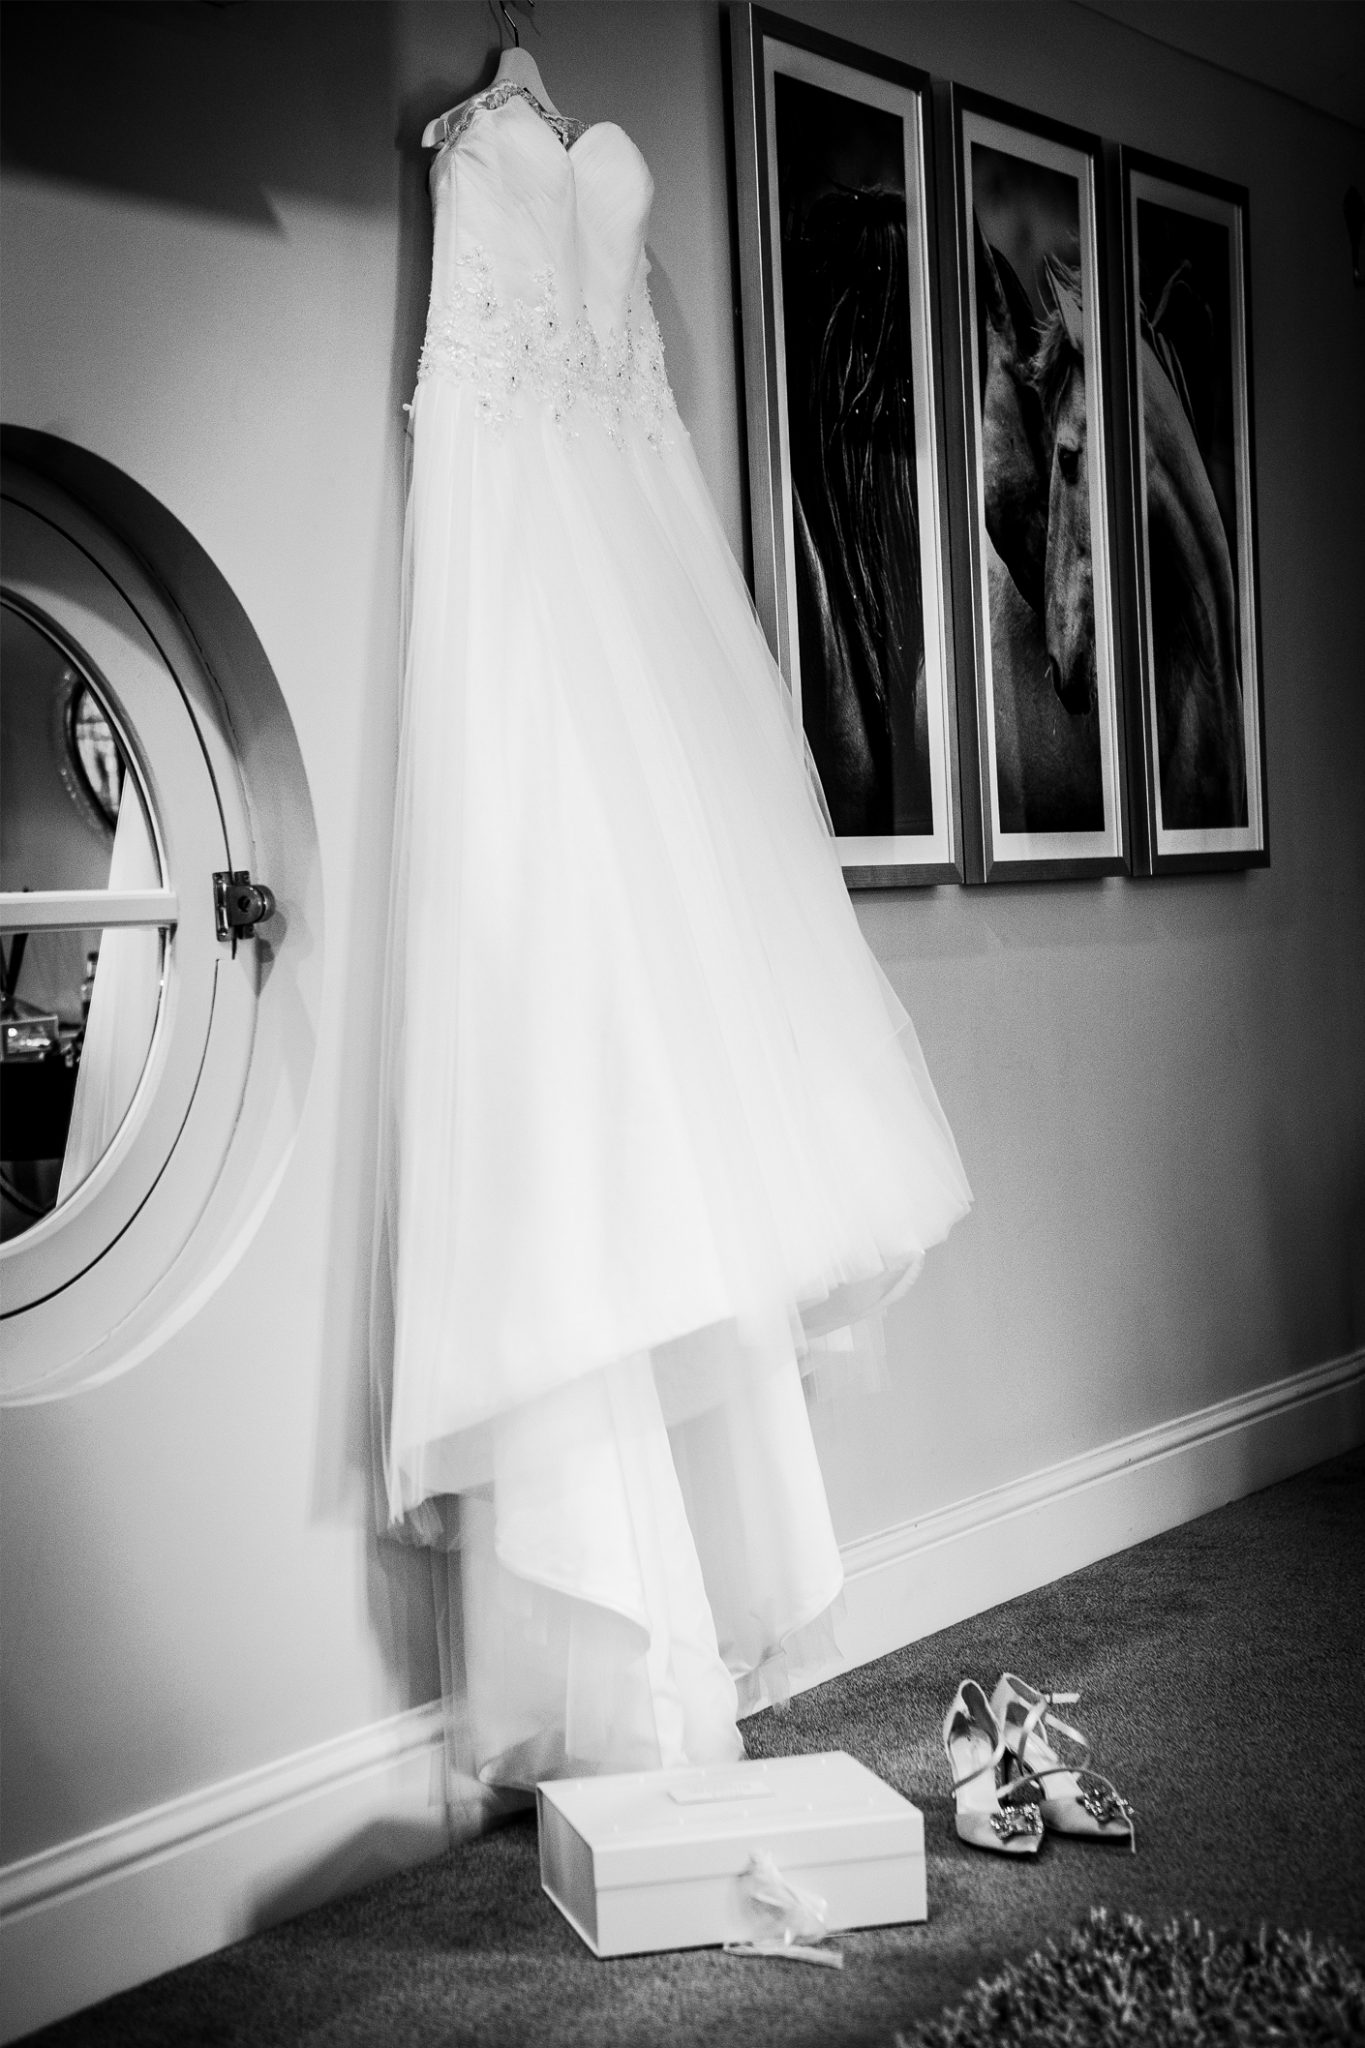 photography-of-the-brides-wedding-dress-at-merrydale-manor-knutsford-cheshire